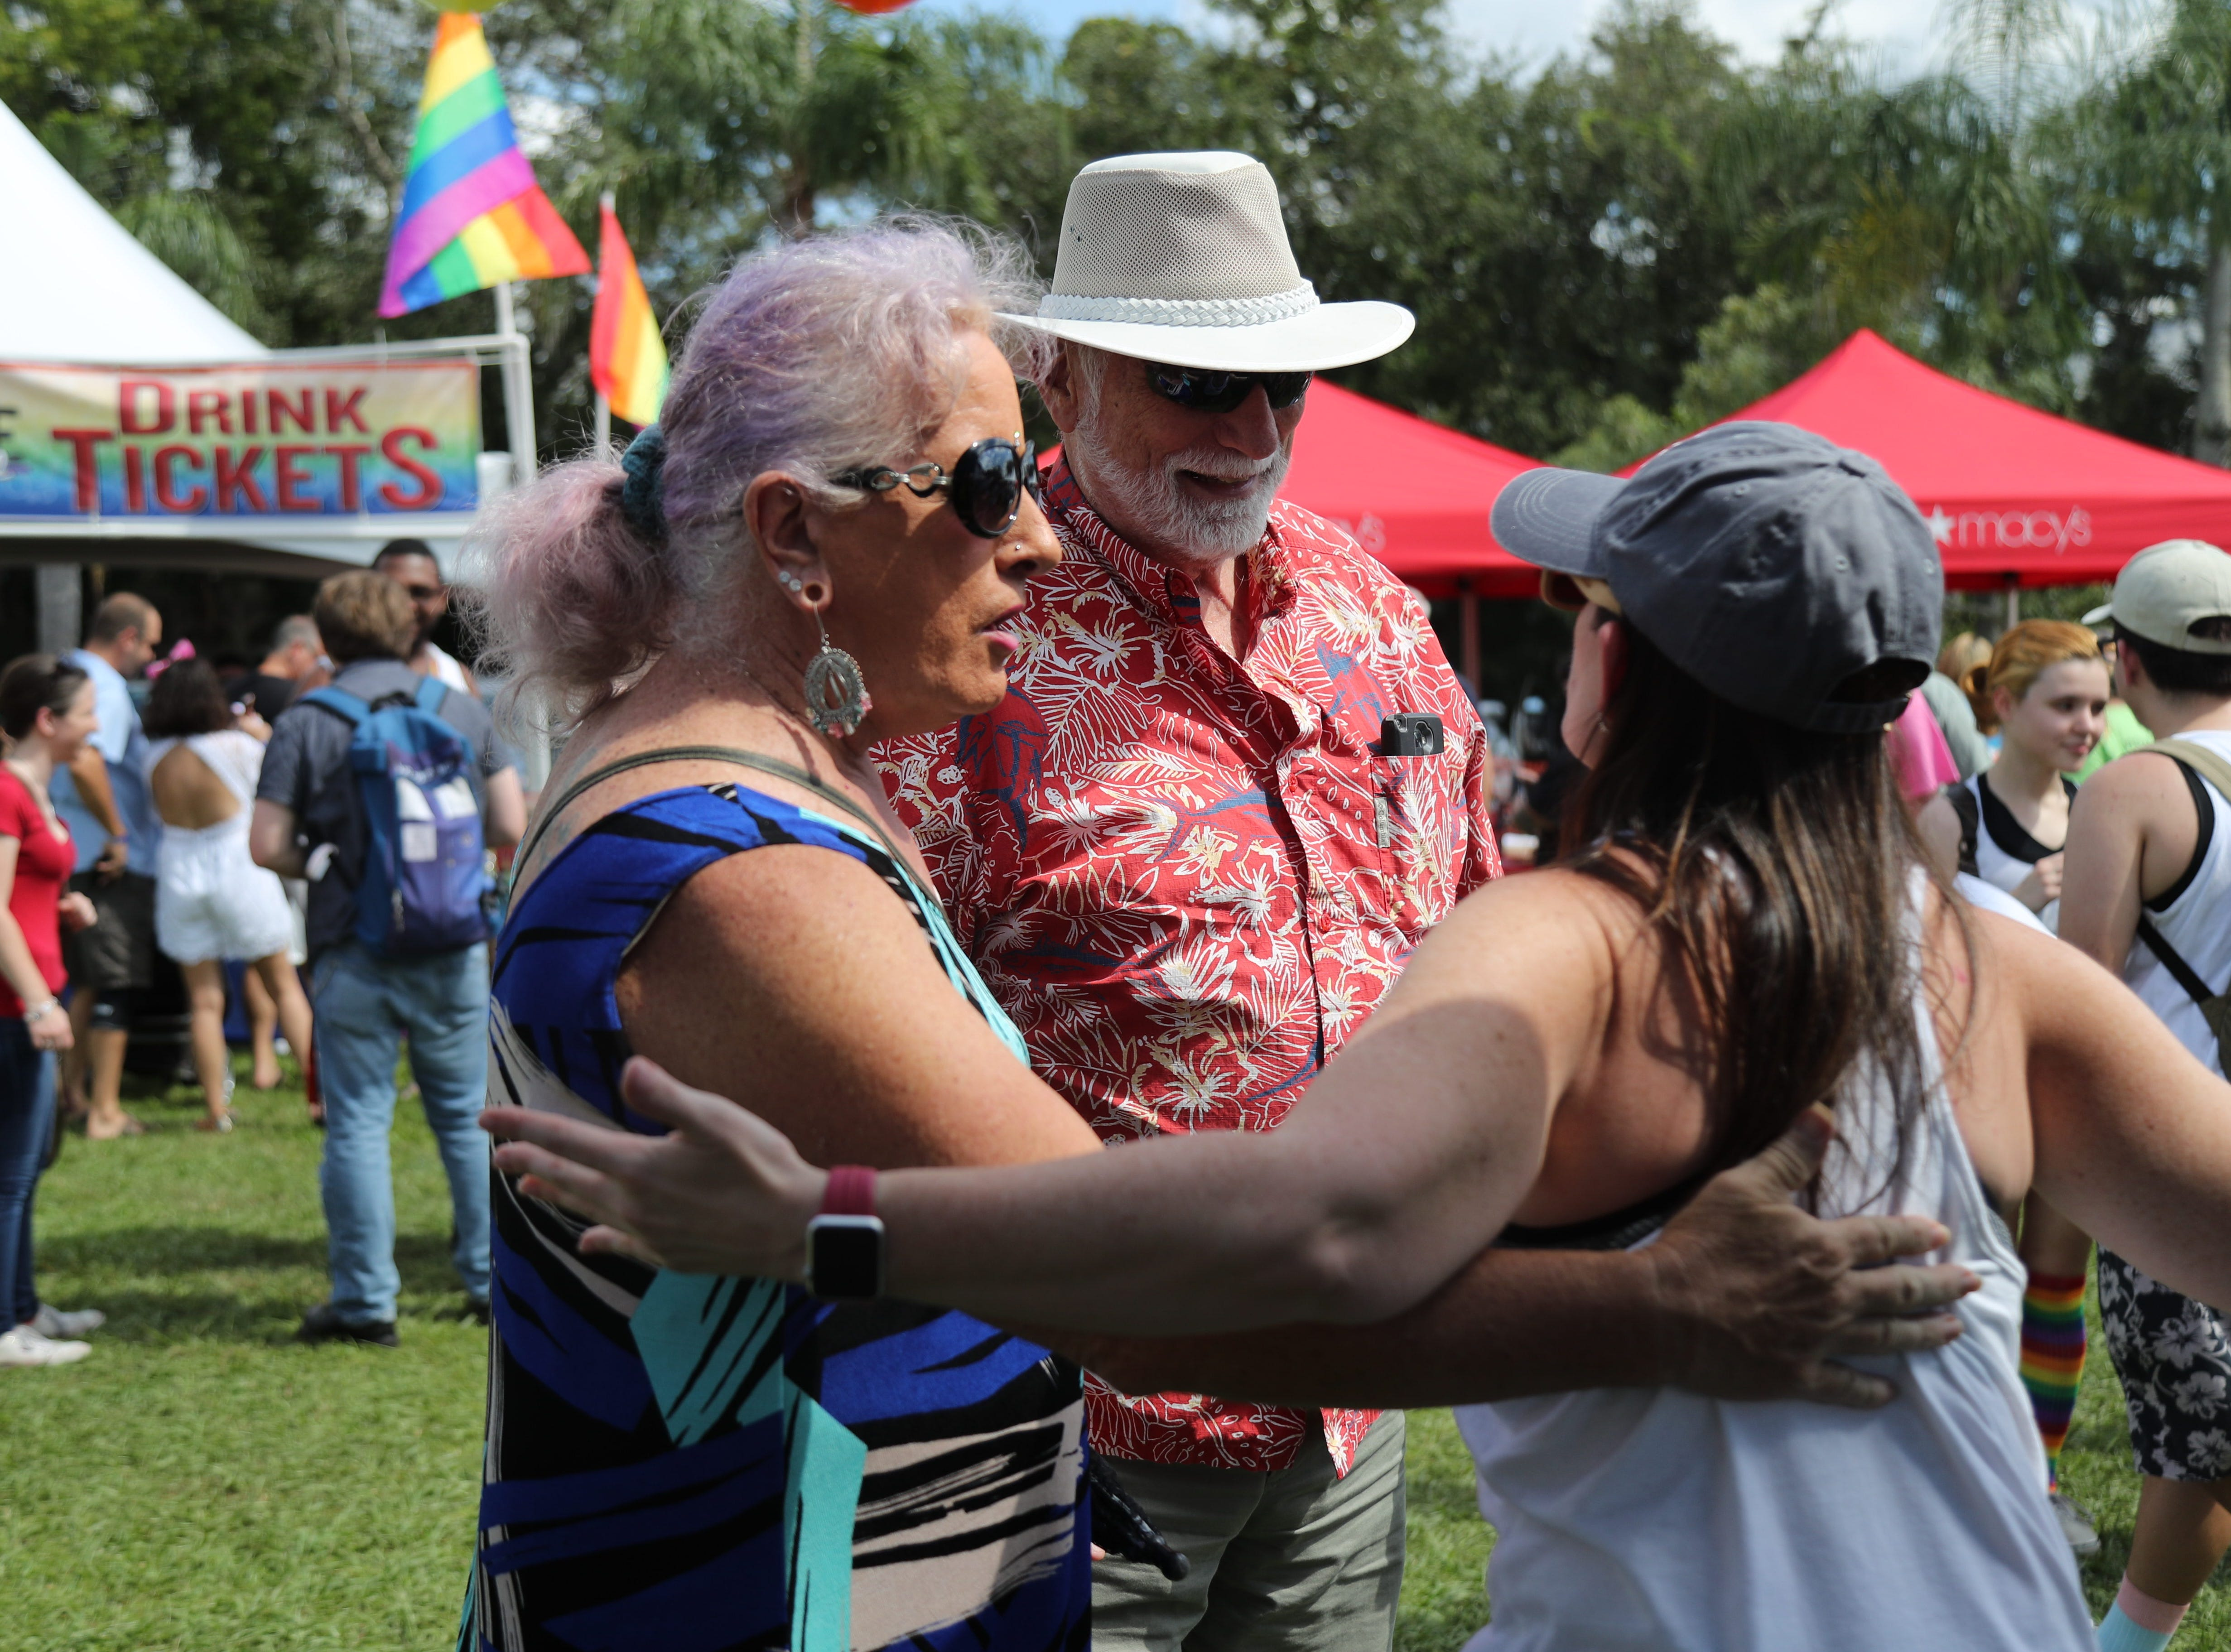 SWFL Pride 2018 was held Saturday, October 6, 2018, at the Alliance for the Arts in Fort Myers.